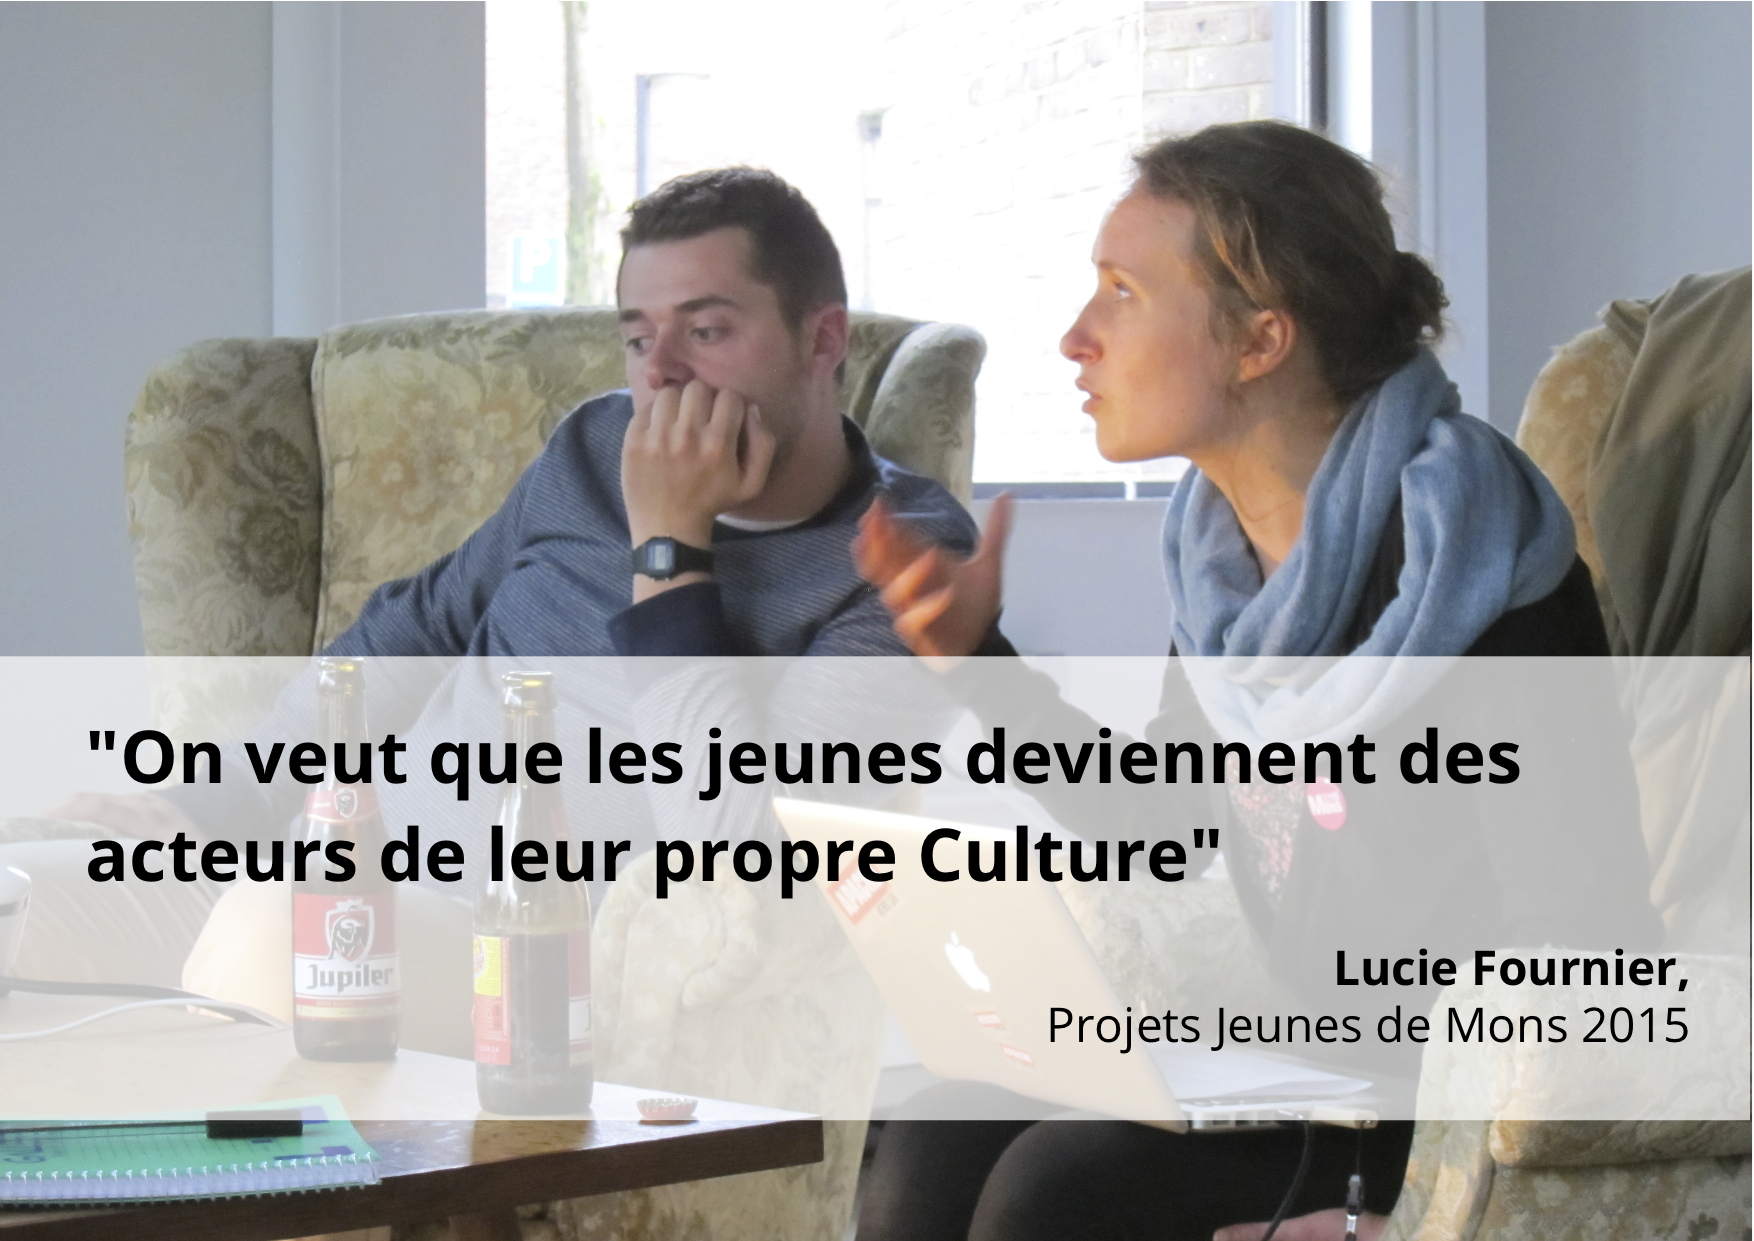 Mons 2015 à Co-nnexion - Coworking Mons